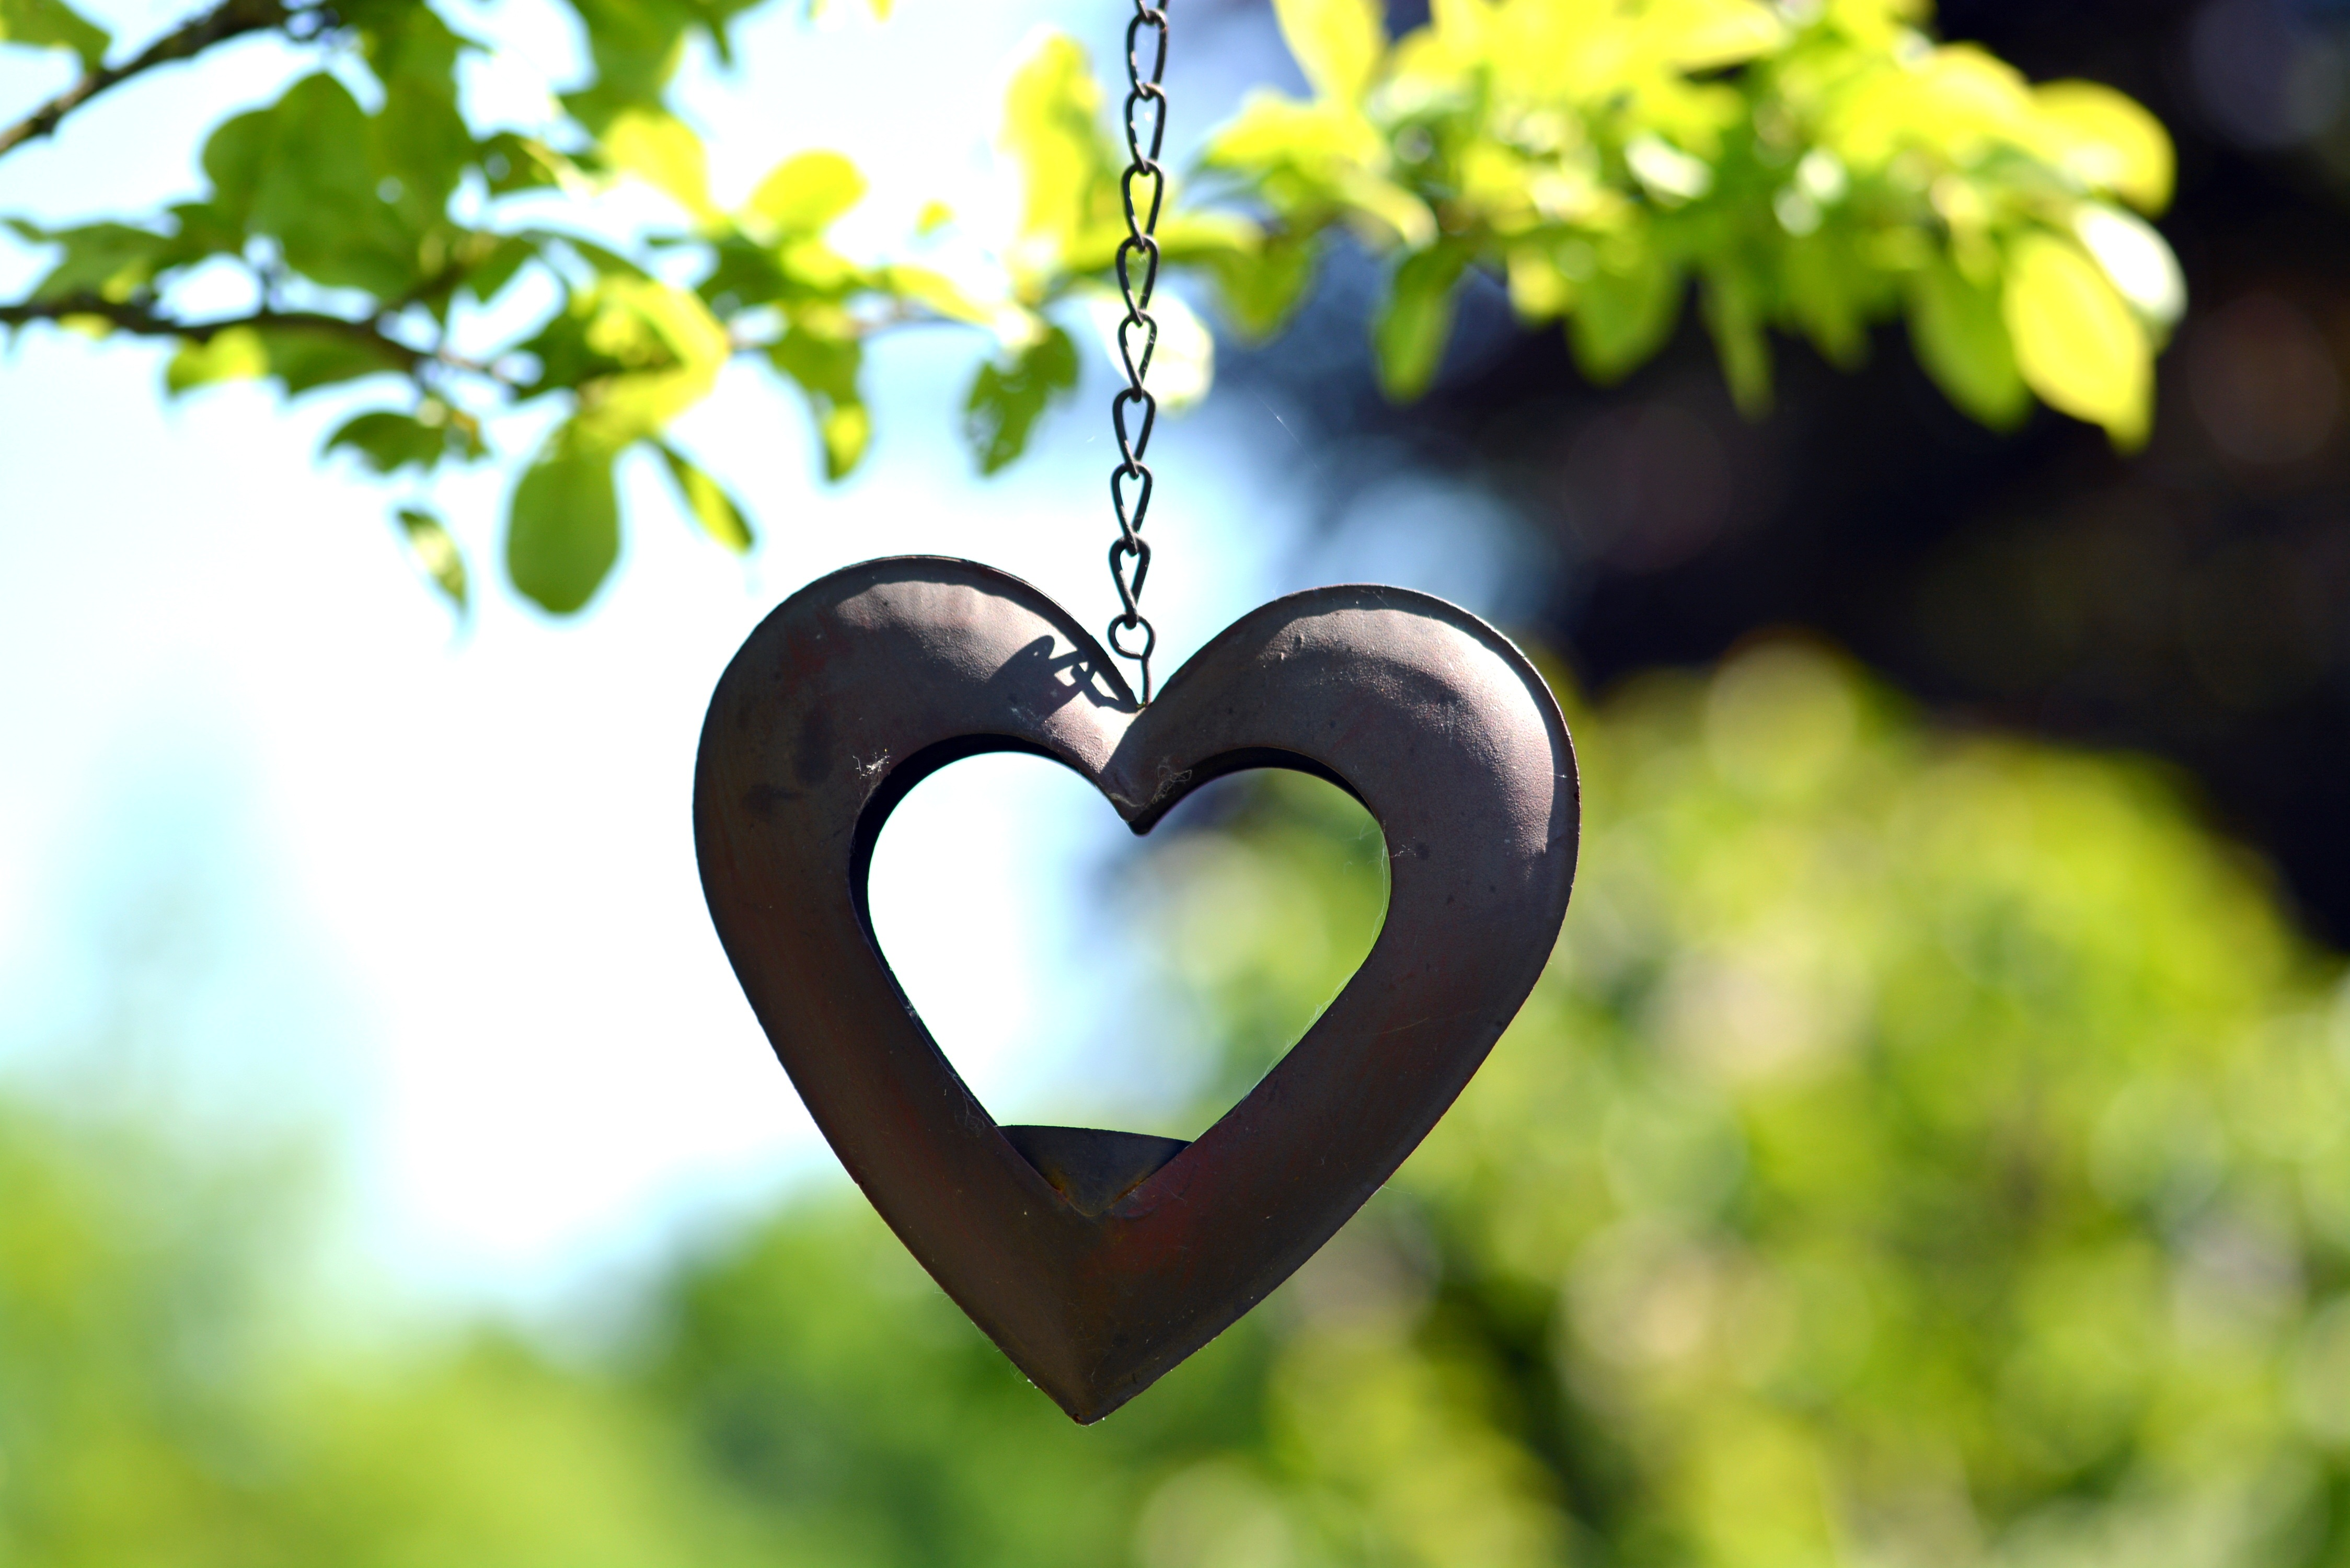 63810 download wallpaper Love, Heart, Suspension, Blur, Smooth, Chain screensavers and pictures for free